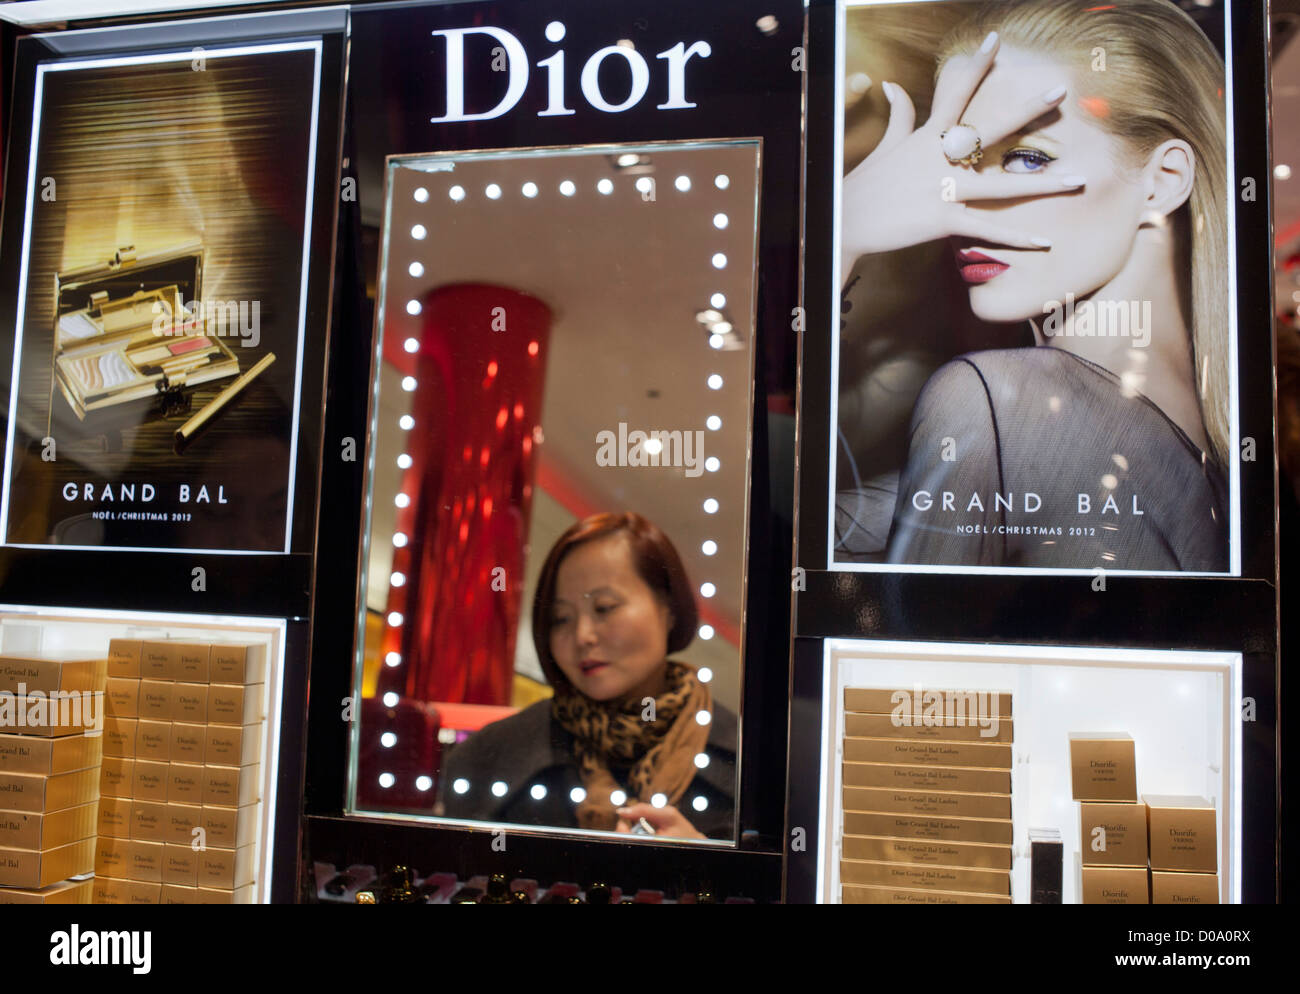 Chinese tourist trying Dior products in a shopping mall in Paris, France Stock Photo